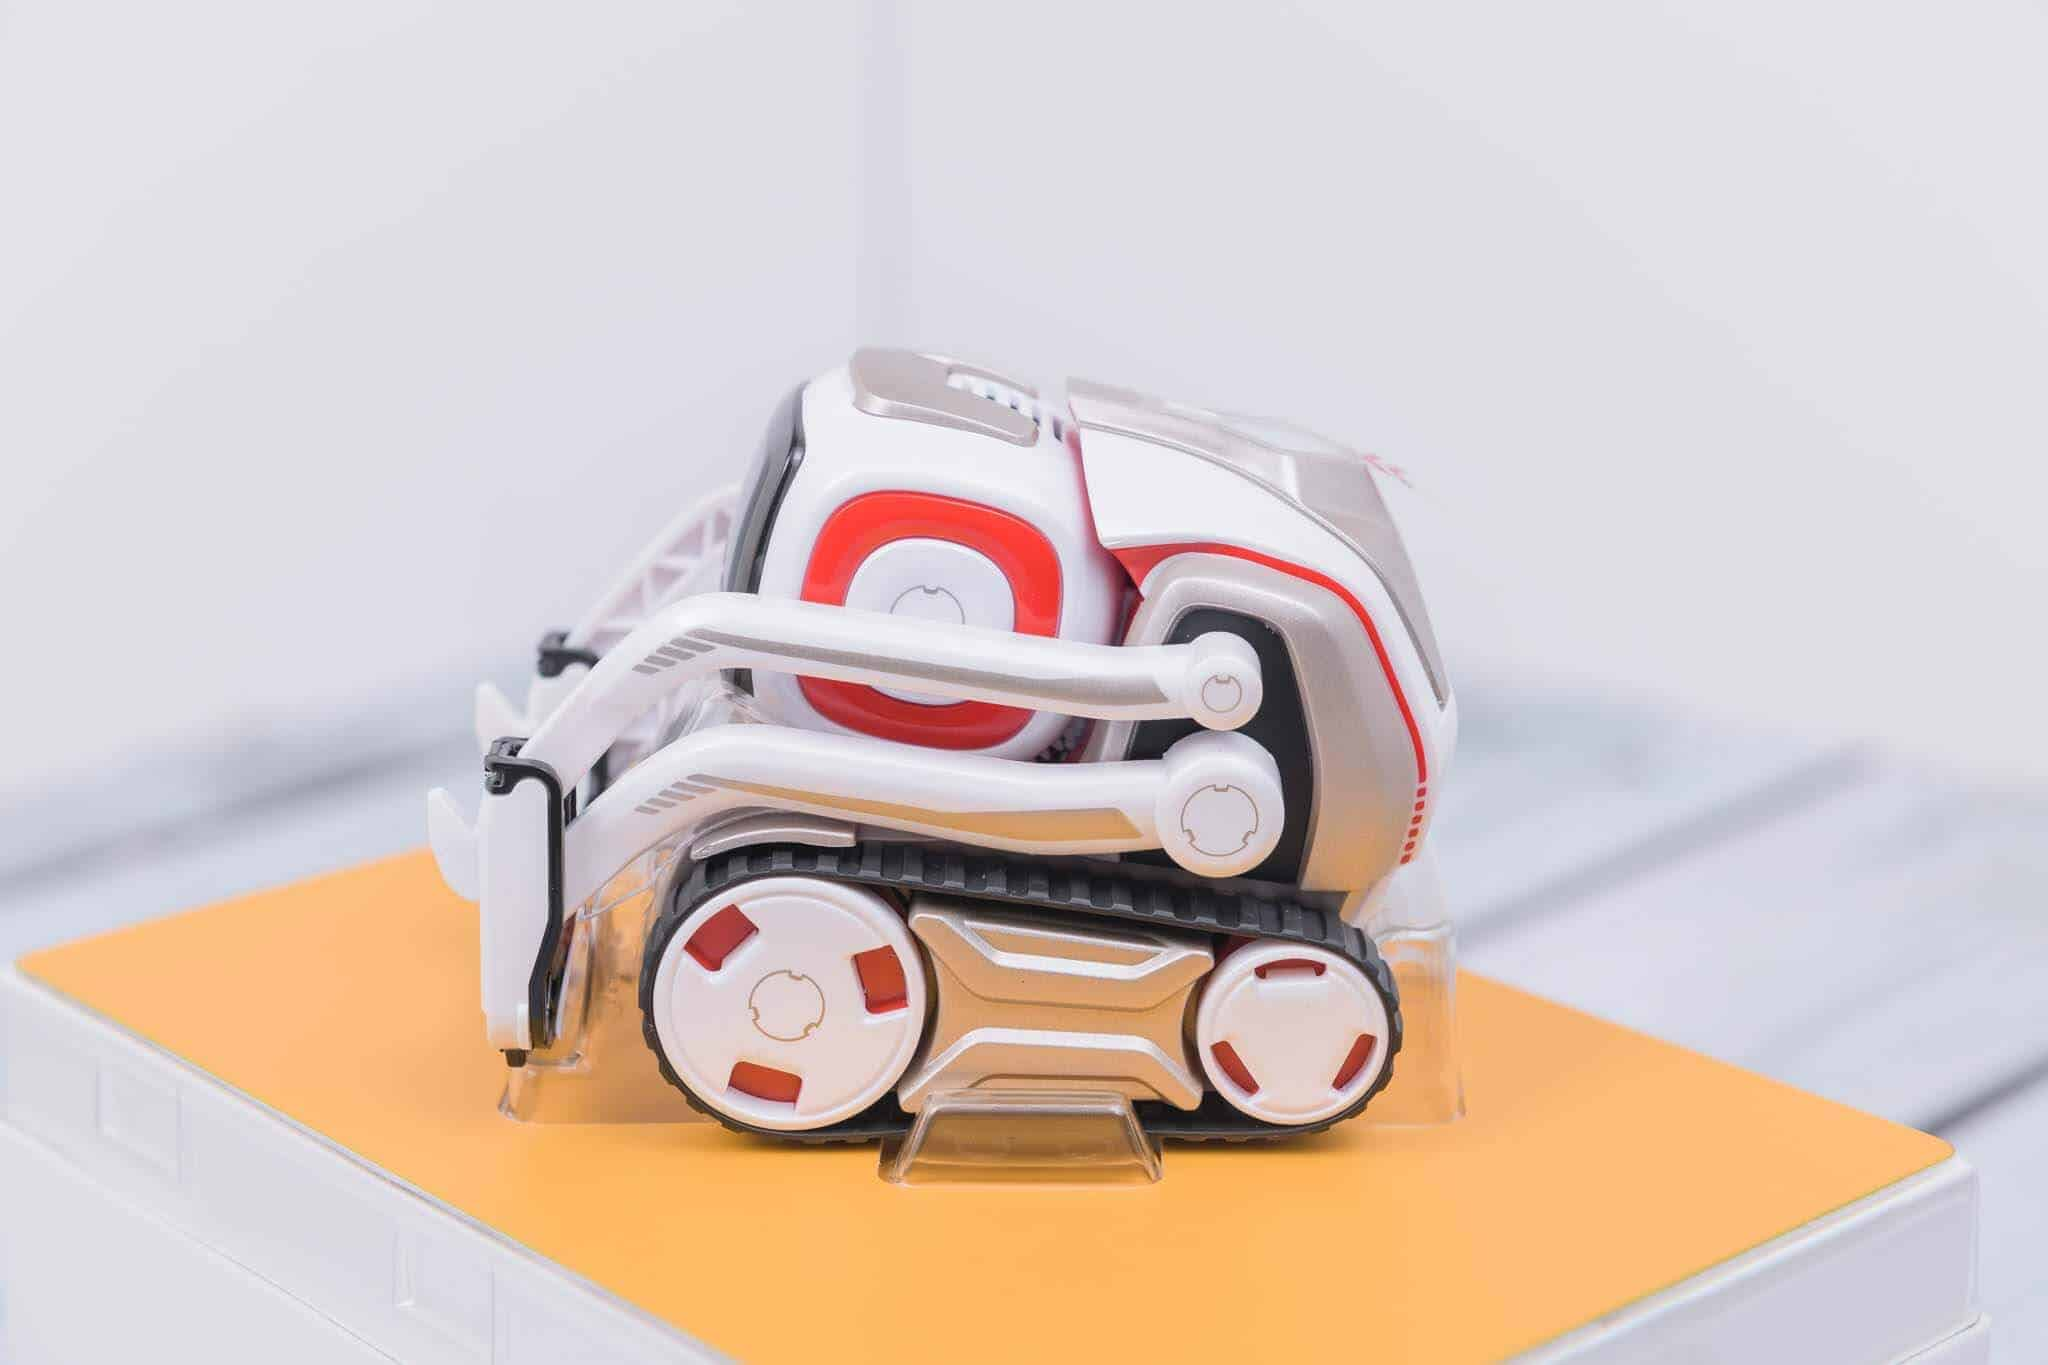 Anki Cozmo Robot Review - Just Out of the Box Side